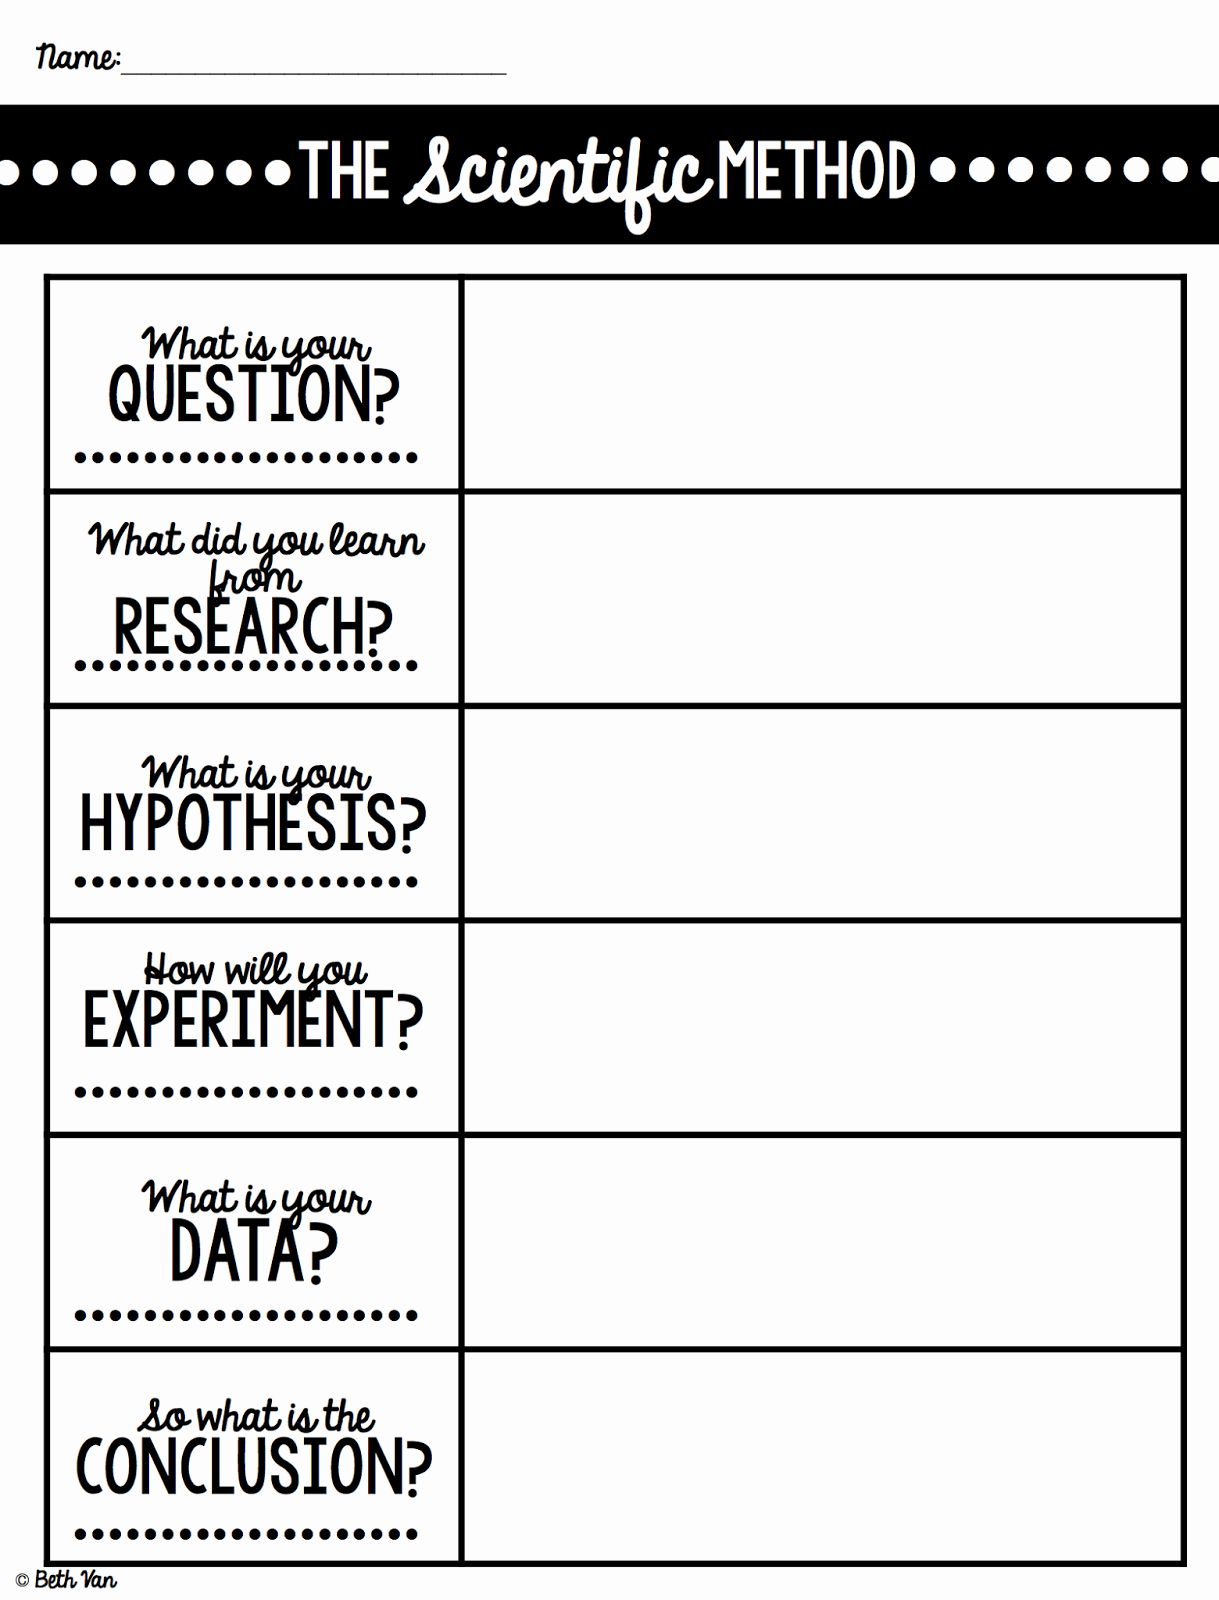 50 Scientific Method Steps Worksheet In